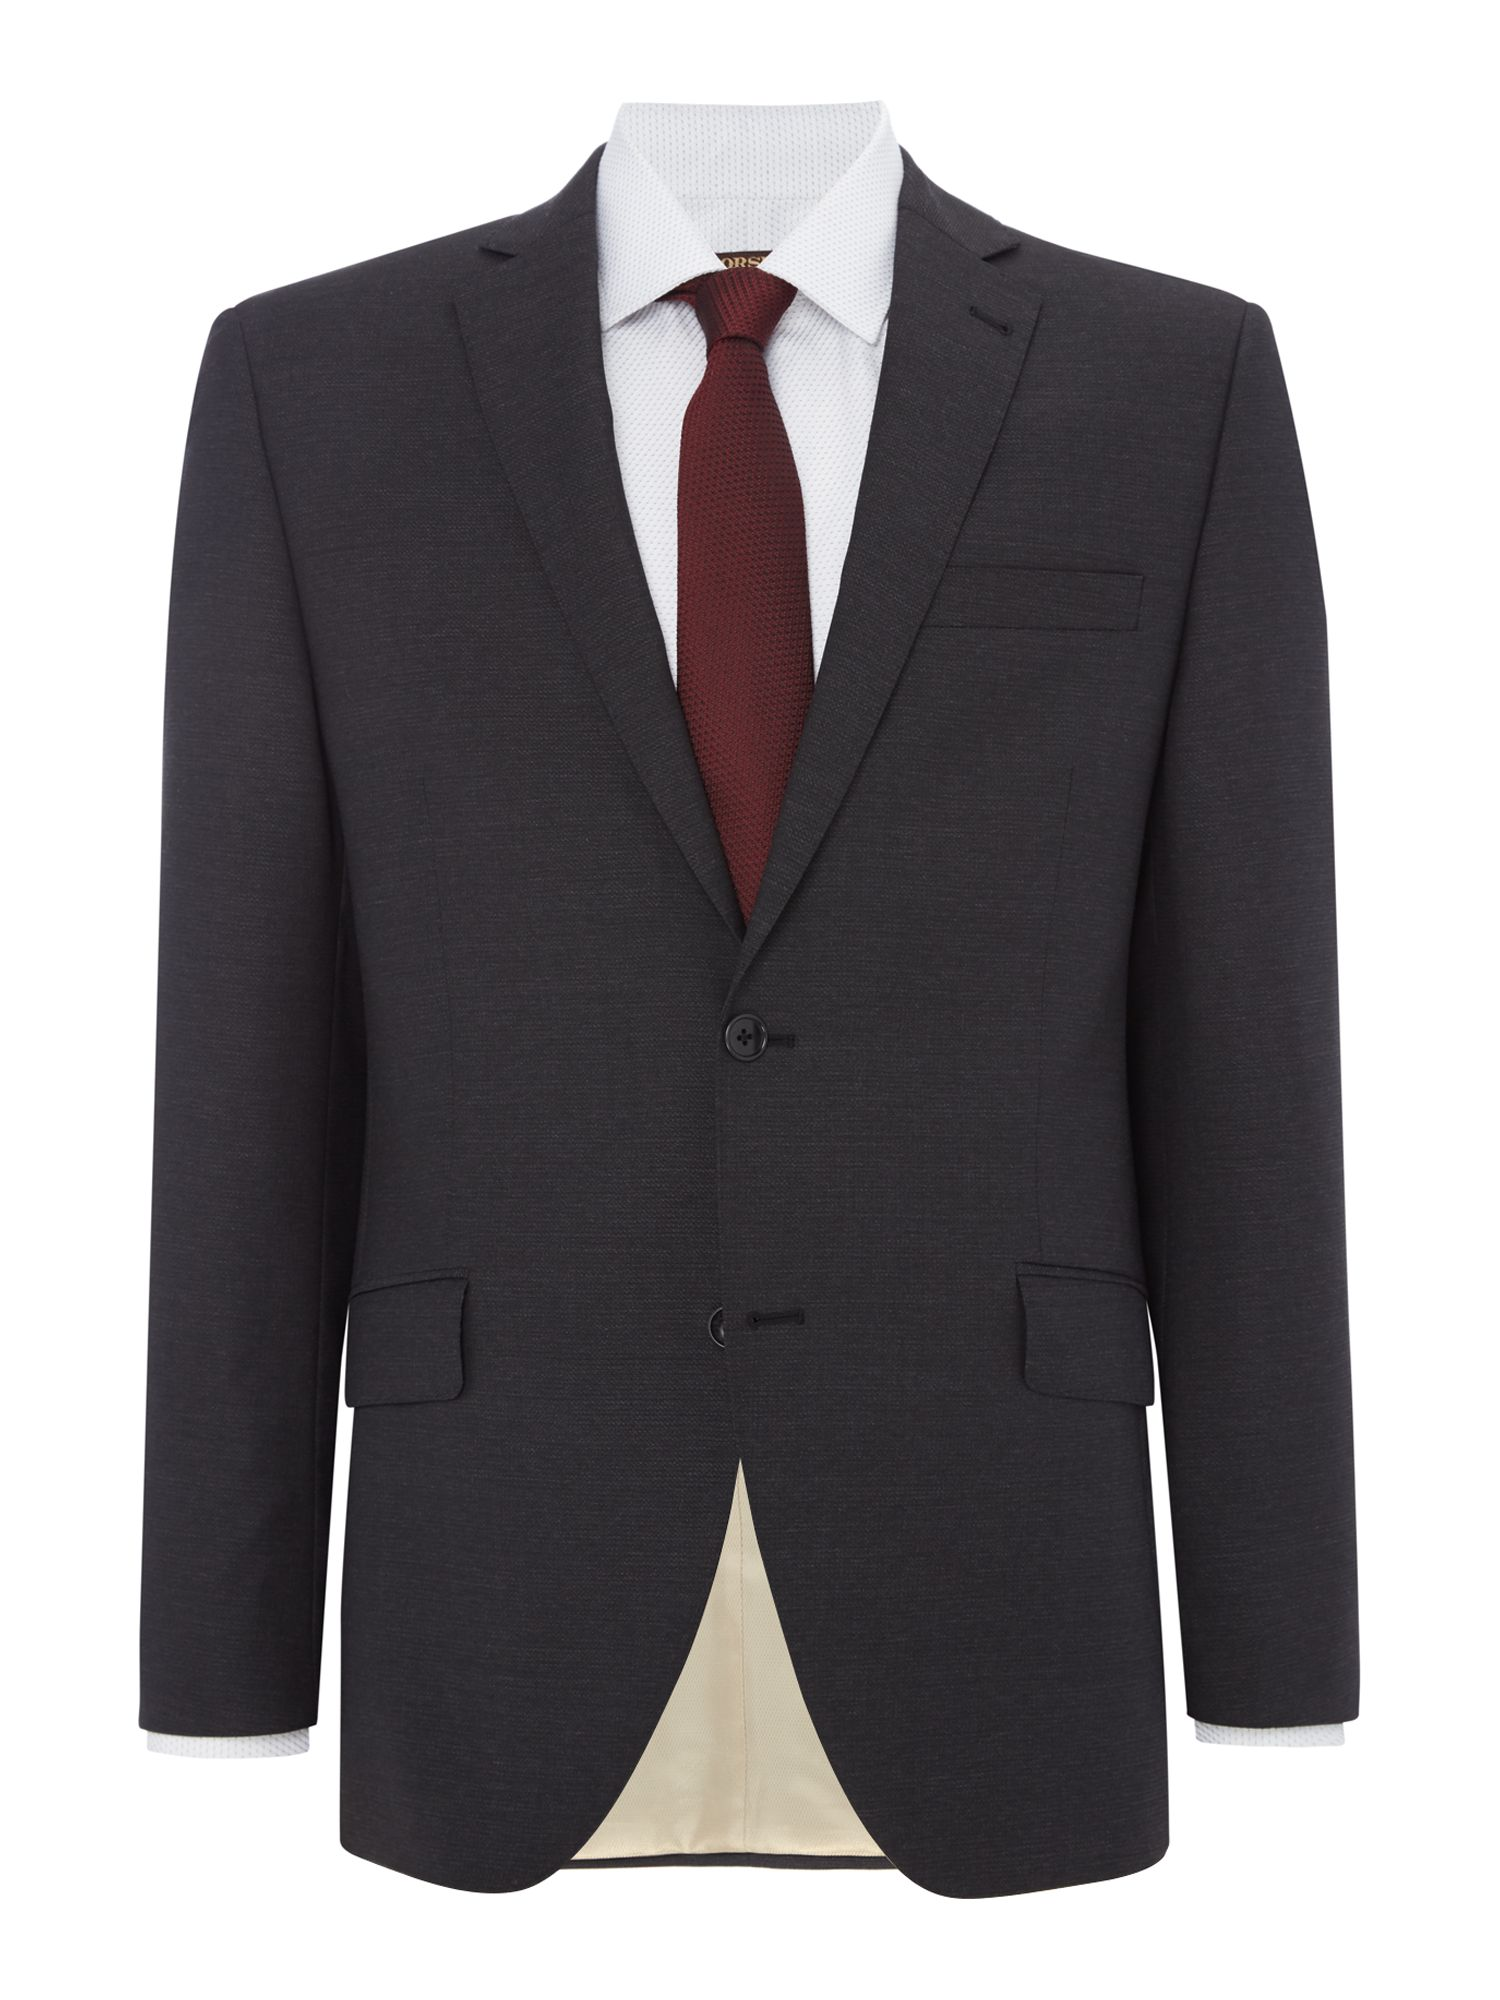 Men's Corsivo Como Italian Wool Textured Suit Jacket, Charcoal